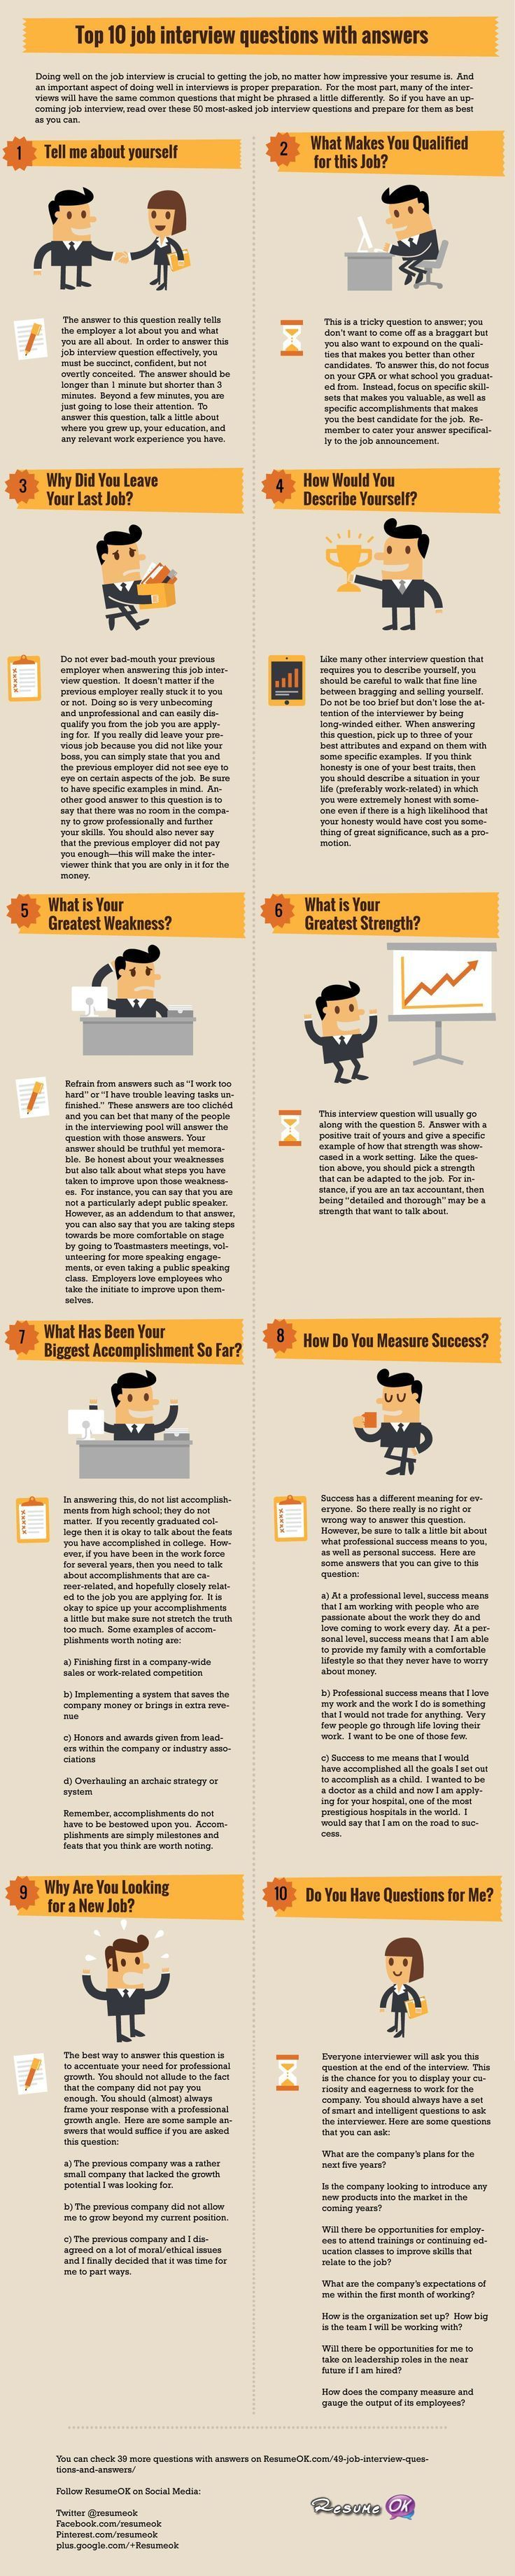 CATEGORIES  Career advice Cover letter Get a job Guest Authors Job interview tips Others Productivity at work Resume writing tips Write a resume    50 Job Interview Questions and Answers [Infographic] Felix - April 16, 2013 - Job interview tips TWEET LIKE IT GOOGLE + LINKEDIN PINTEREST   Doing well on the job interview is crucial to getting the job, no matter how impressive your resume is. And an important aspect of doing well in interviews is proper preparation. For the most part, m